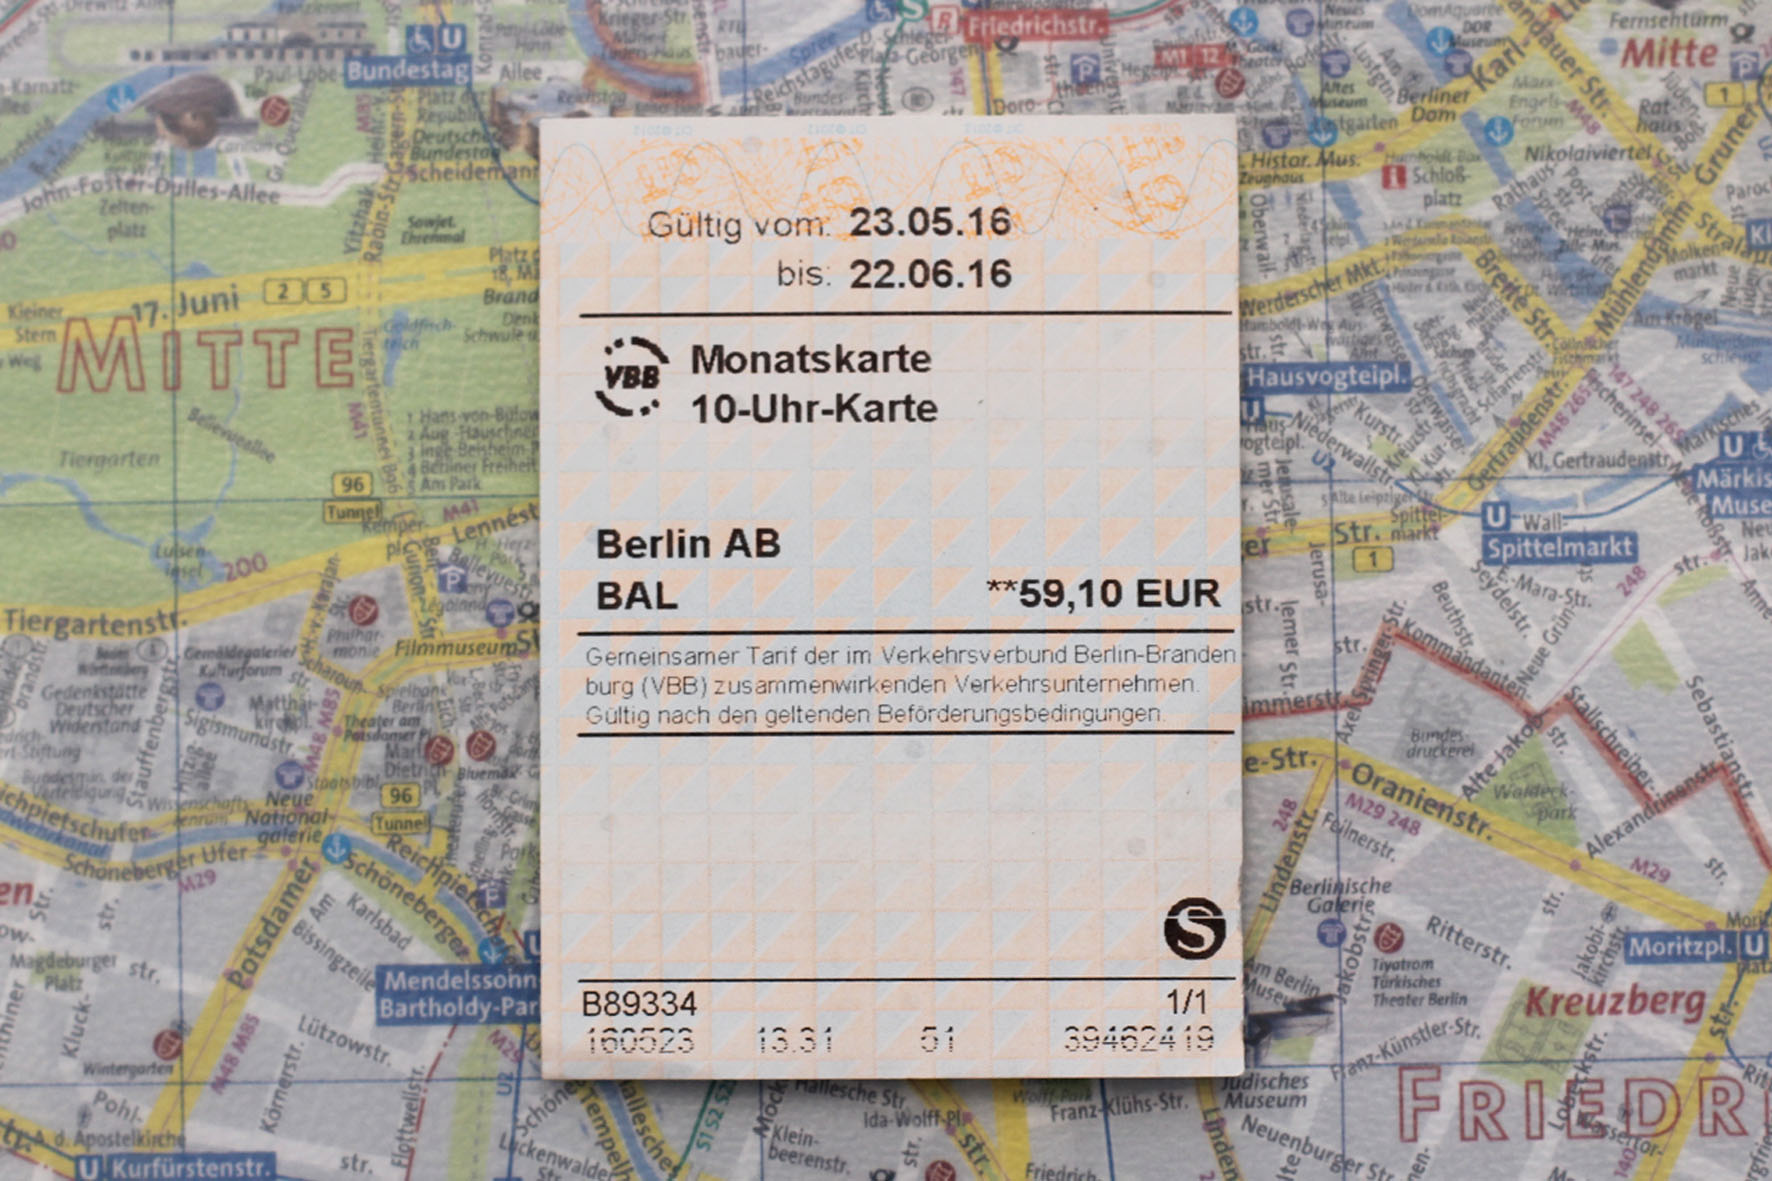 S-bahn Plan Von Hamburg Getting Caught Without A Valid Ticket On Berlin Public